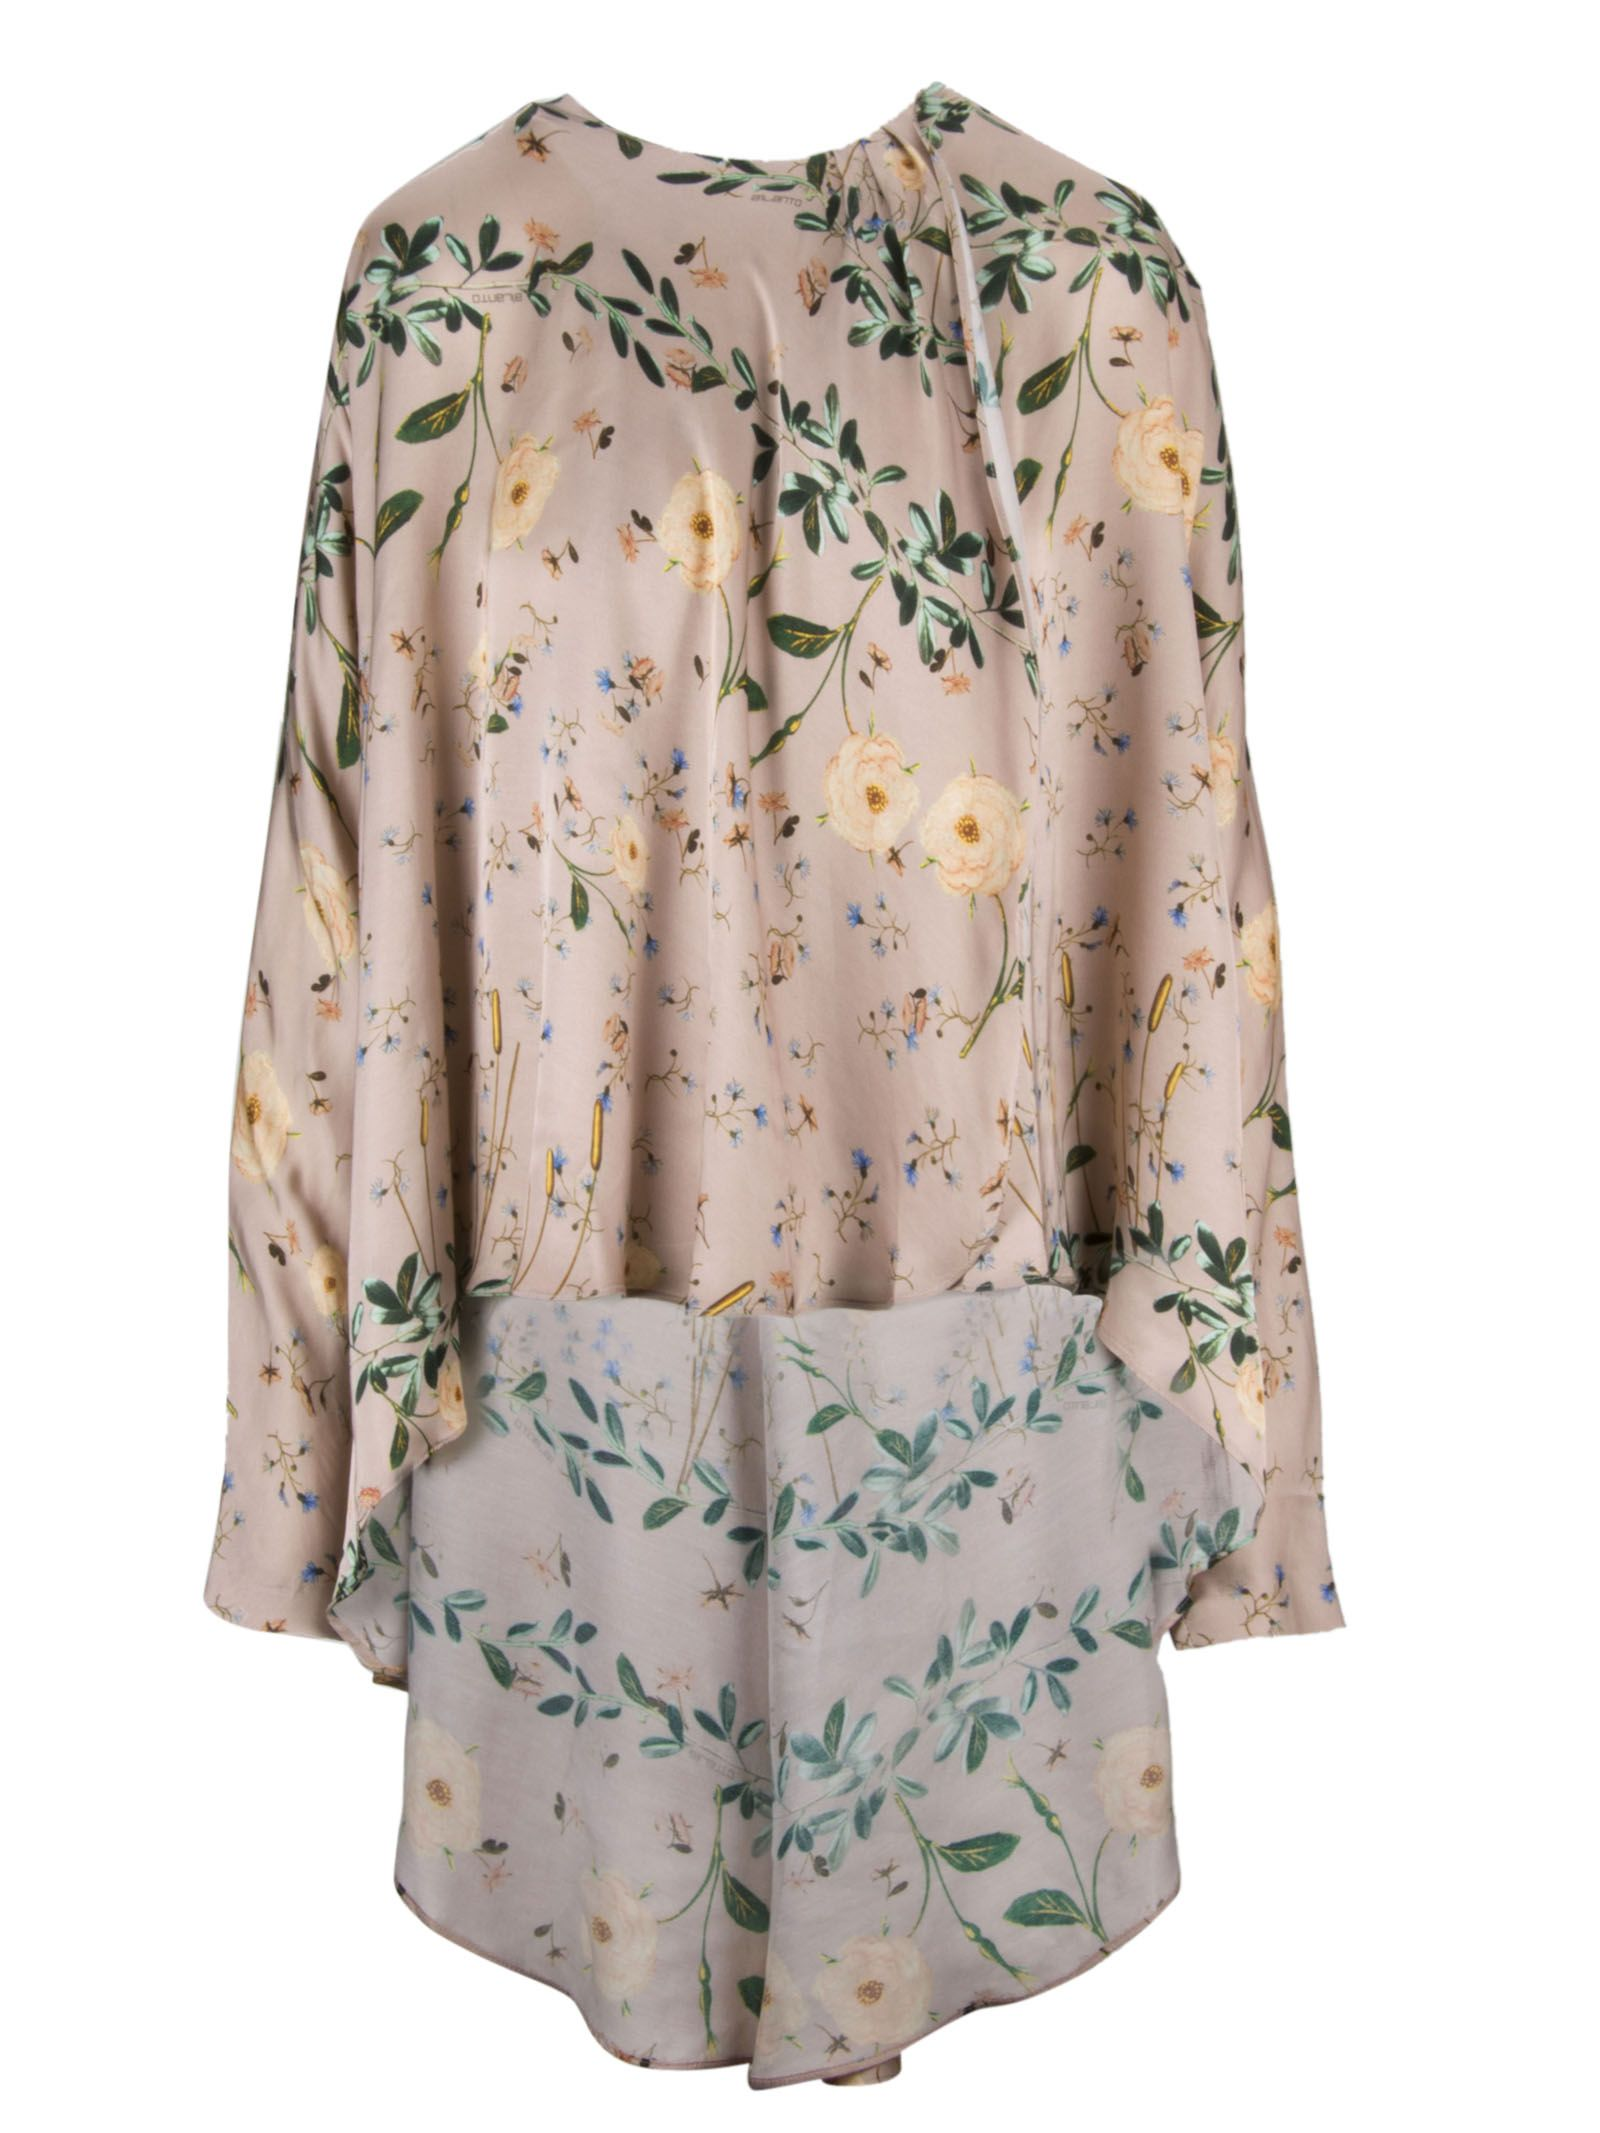 AILANTO Flower Print Oversized Blouse in Nude